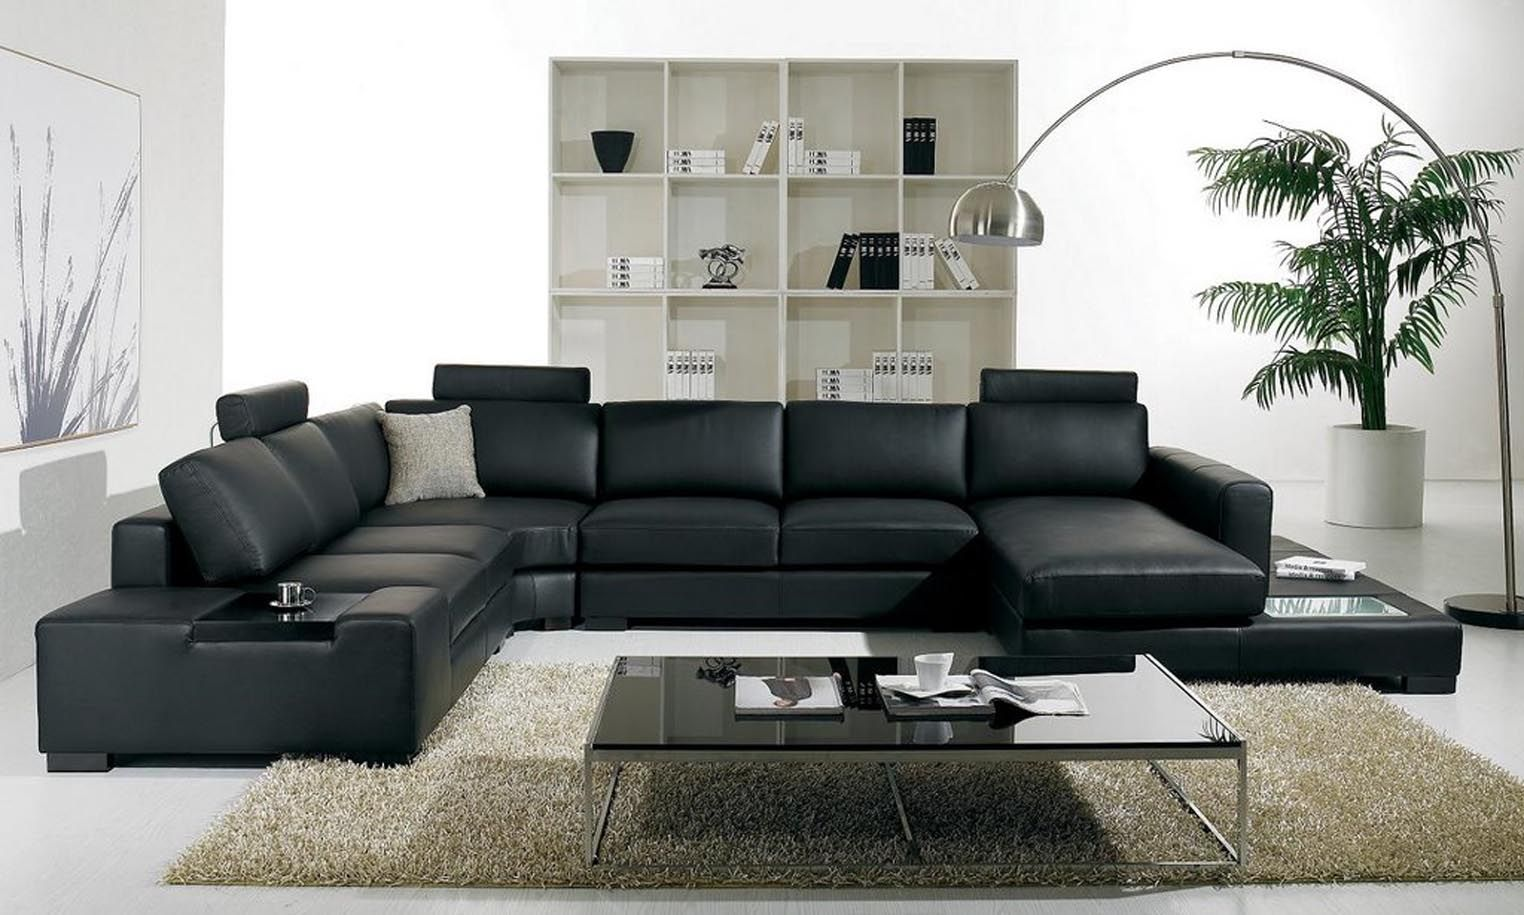 Comfortable black leather sectional sofa   The Versatility and Allure of  Leather Seating. Comfortable black leather sectional sofa   The Versatility and